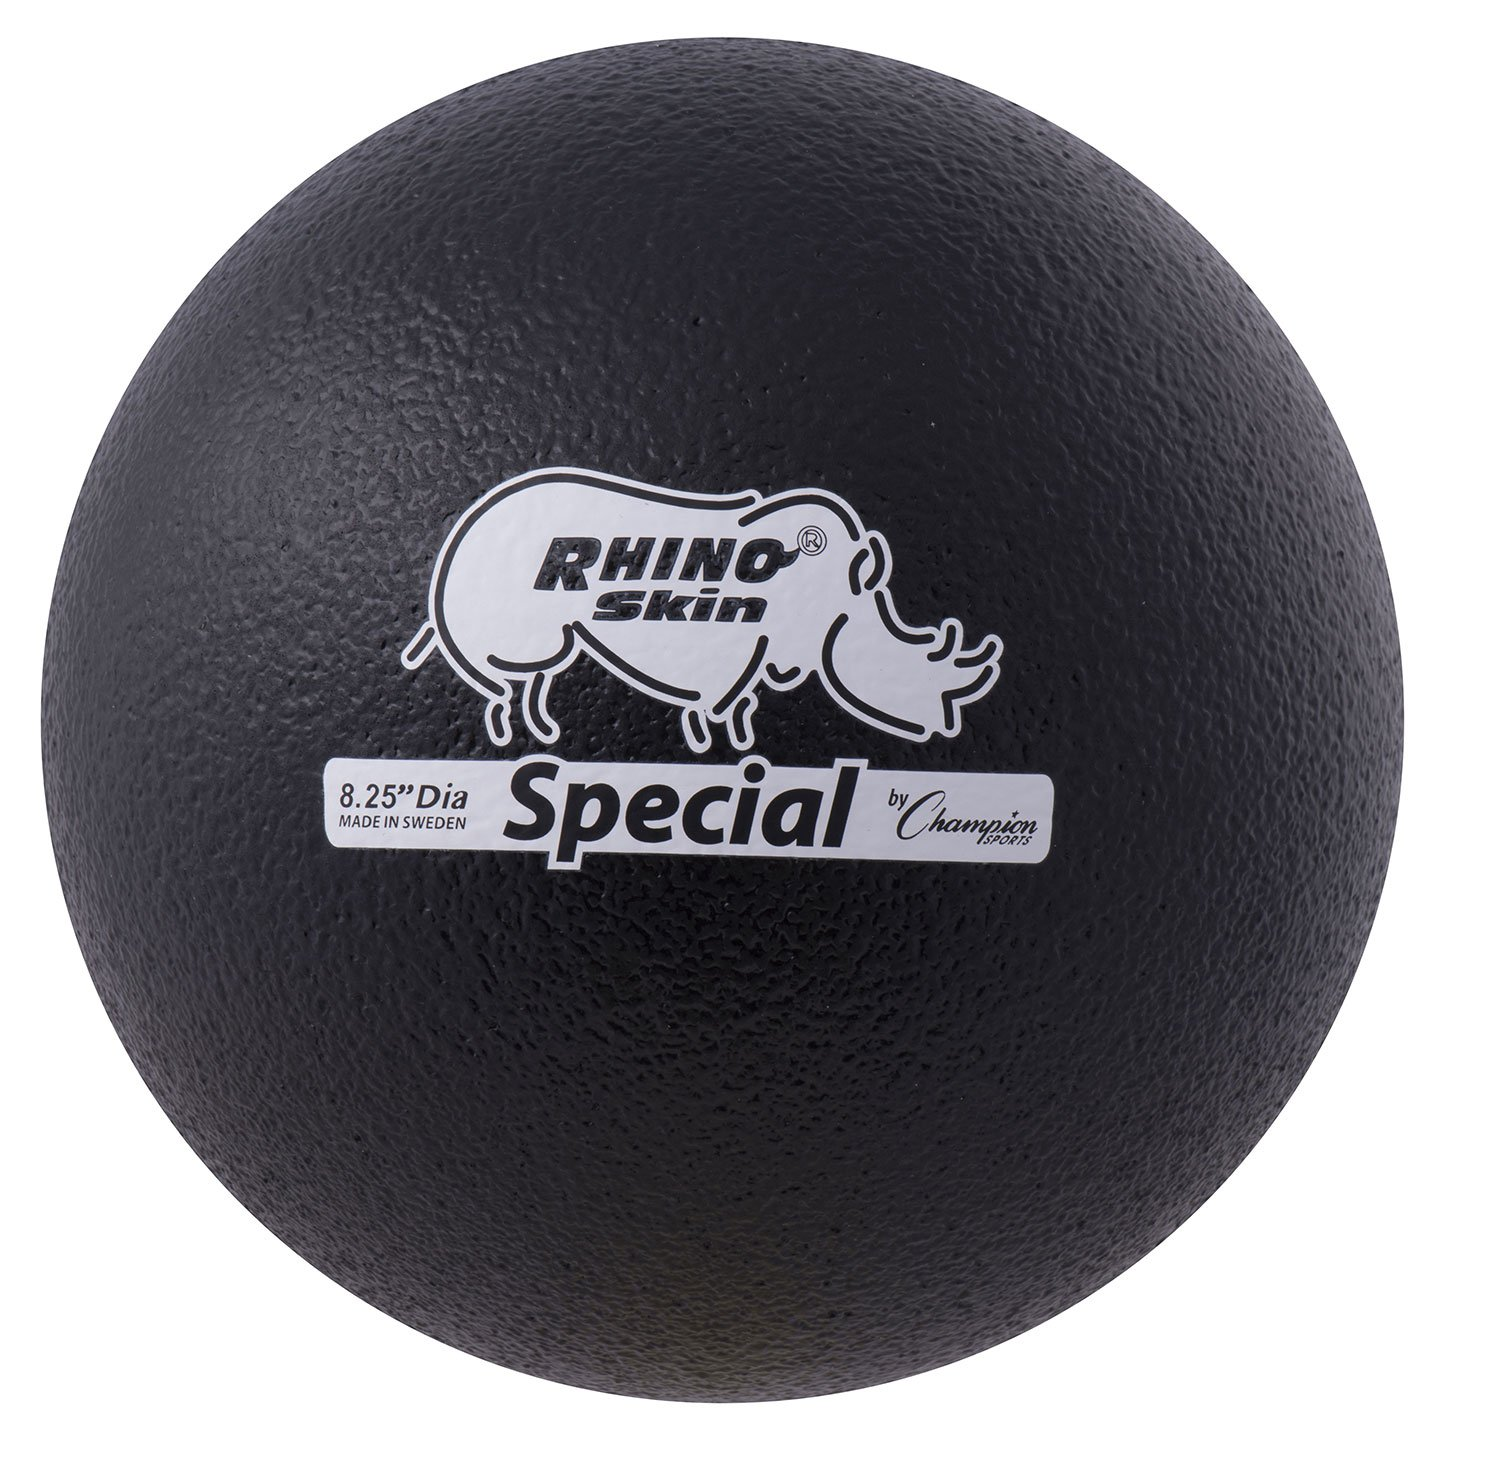 Champion Sports Rhino Skin Special Playground Ball, Black by Champion Sports (Image #1)